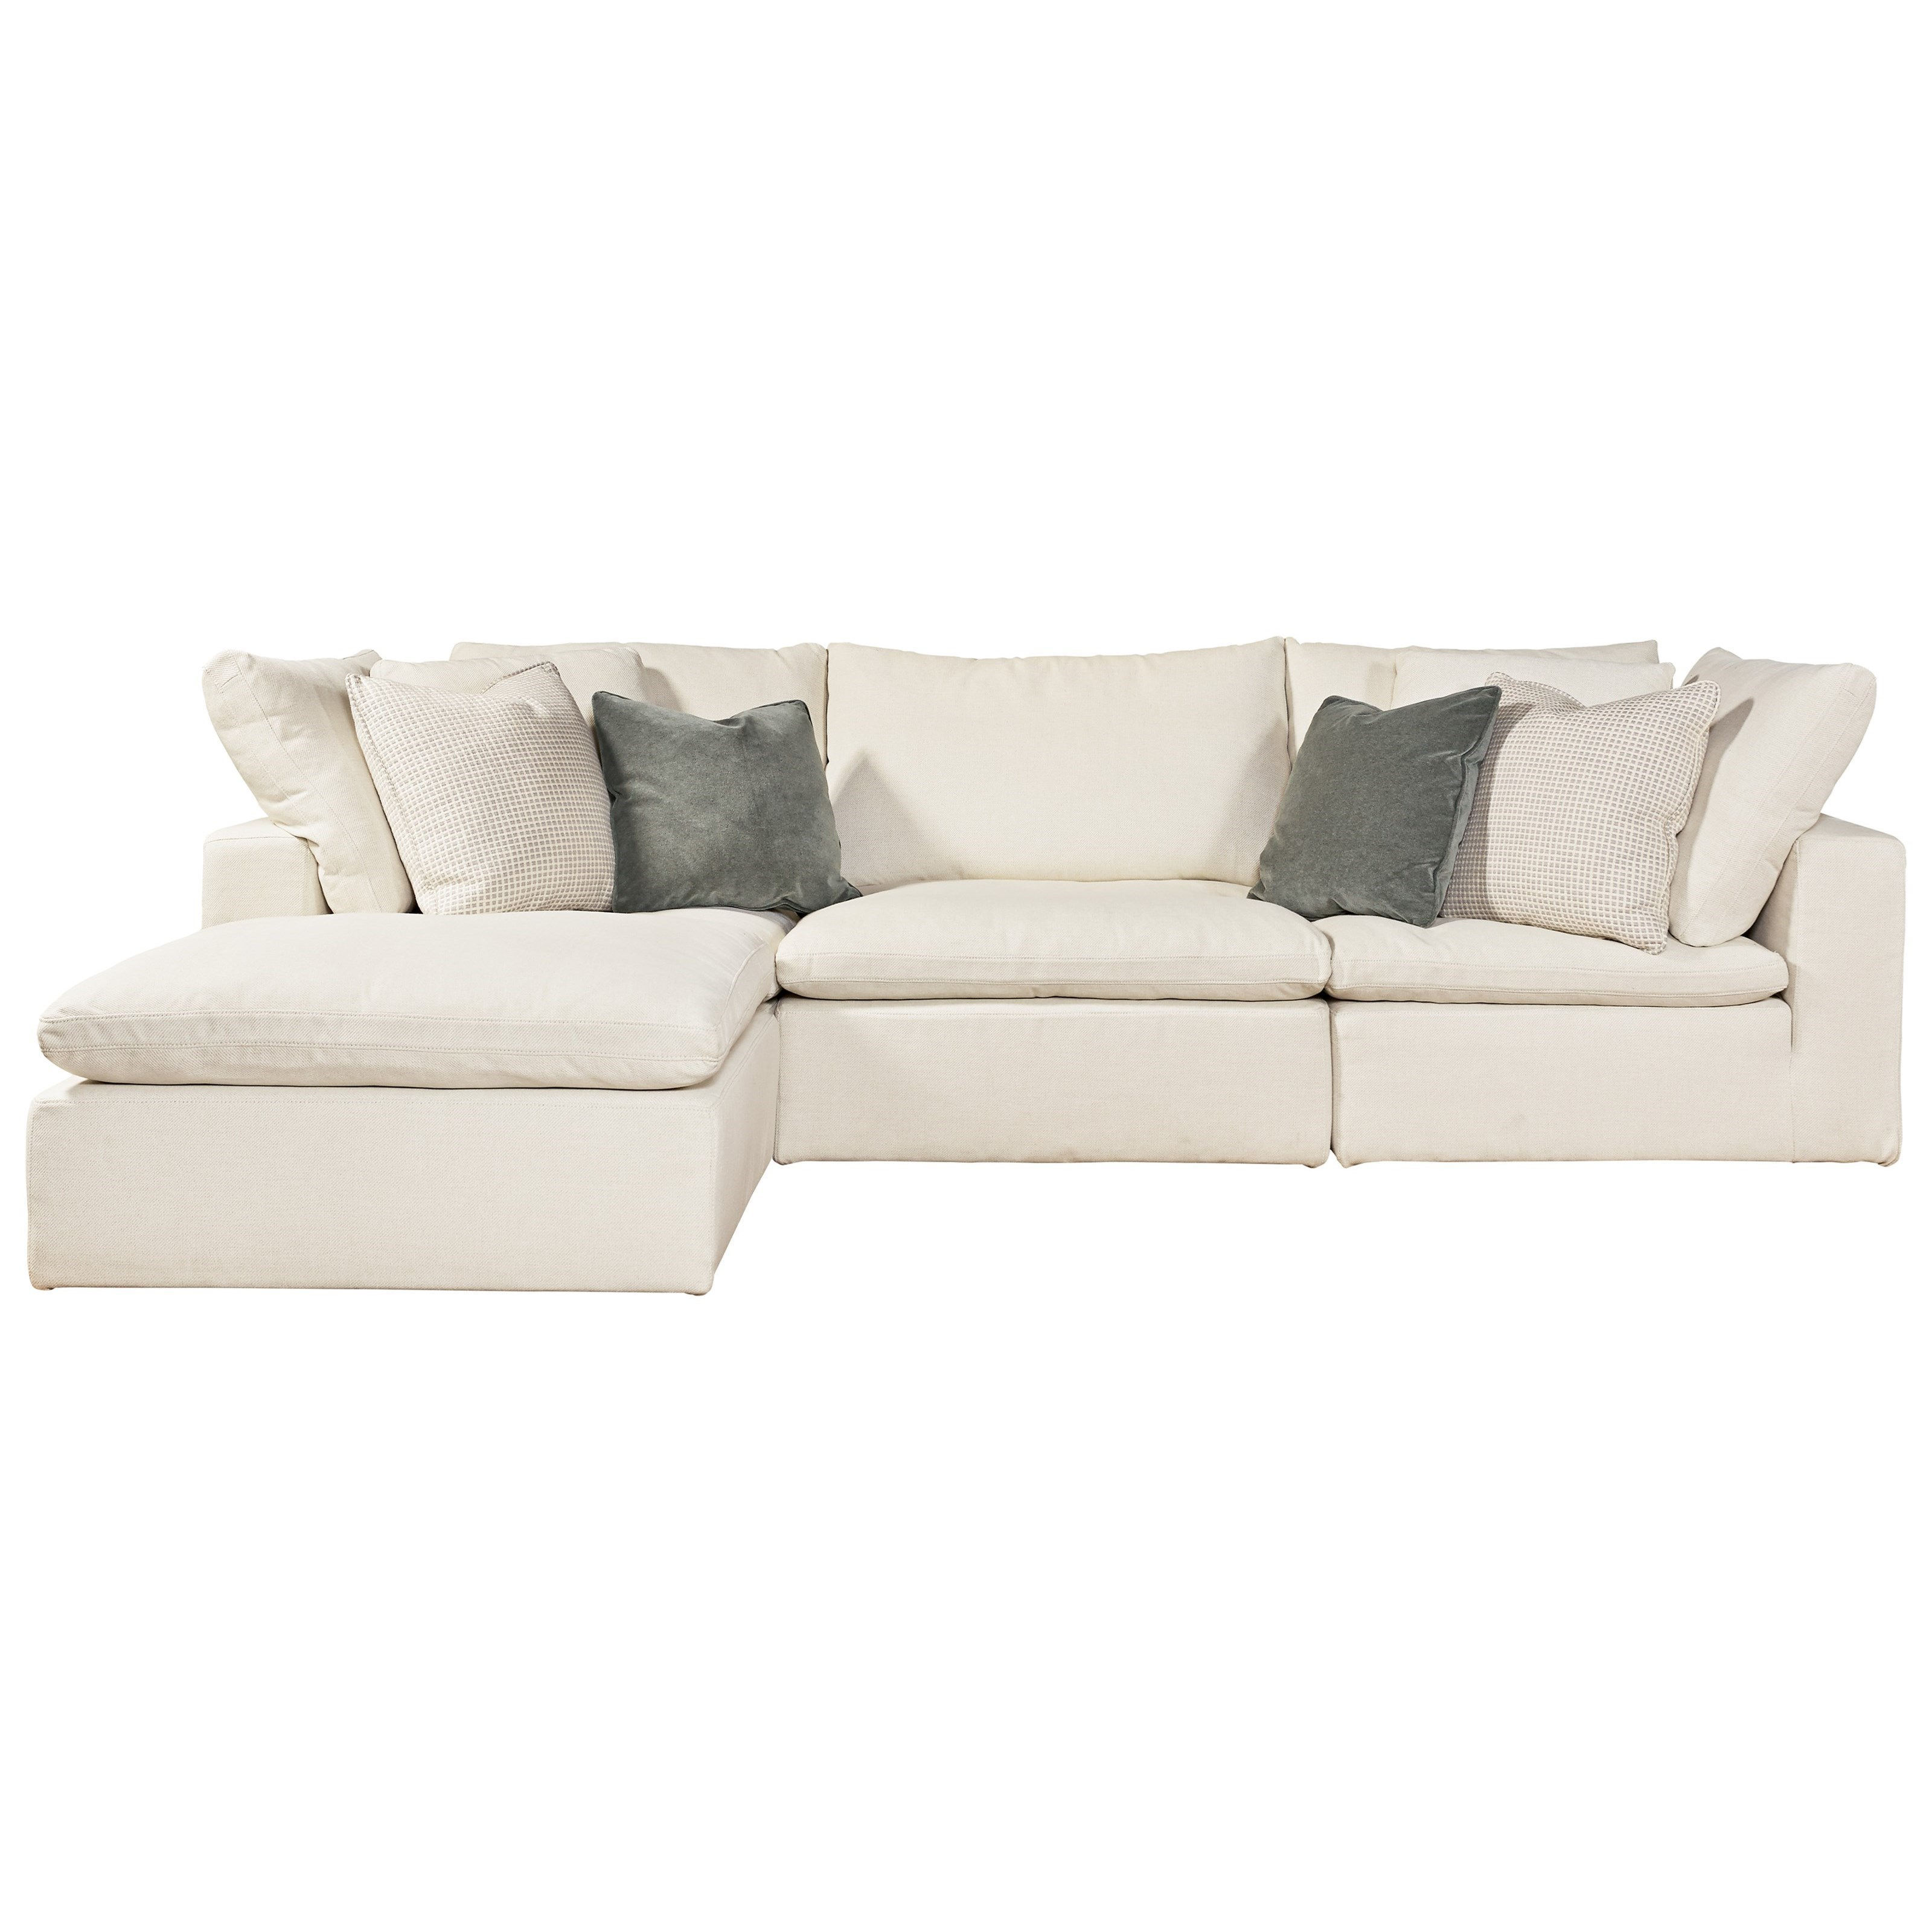 Universal Palmer 4 Piece Sectional With RAF/LAF Ottoman